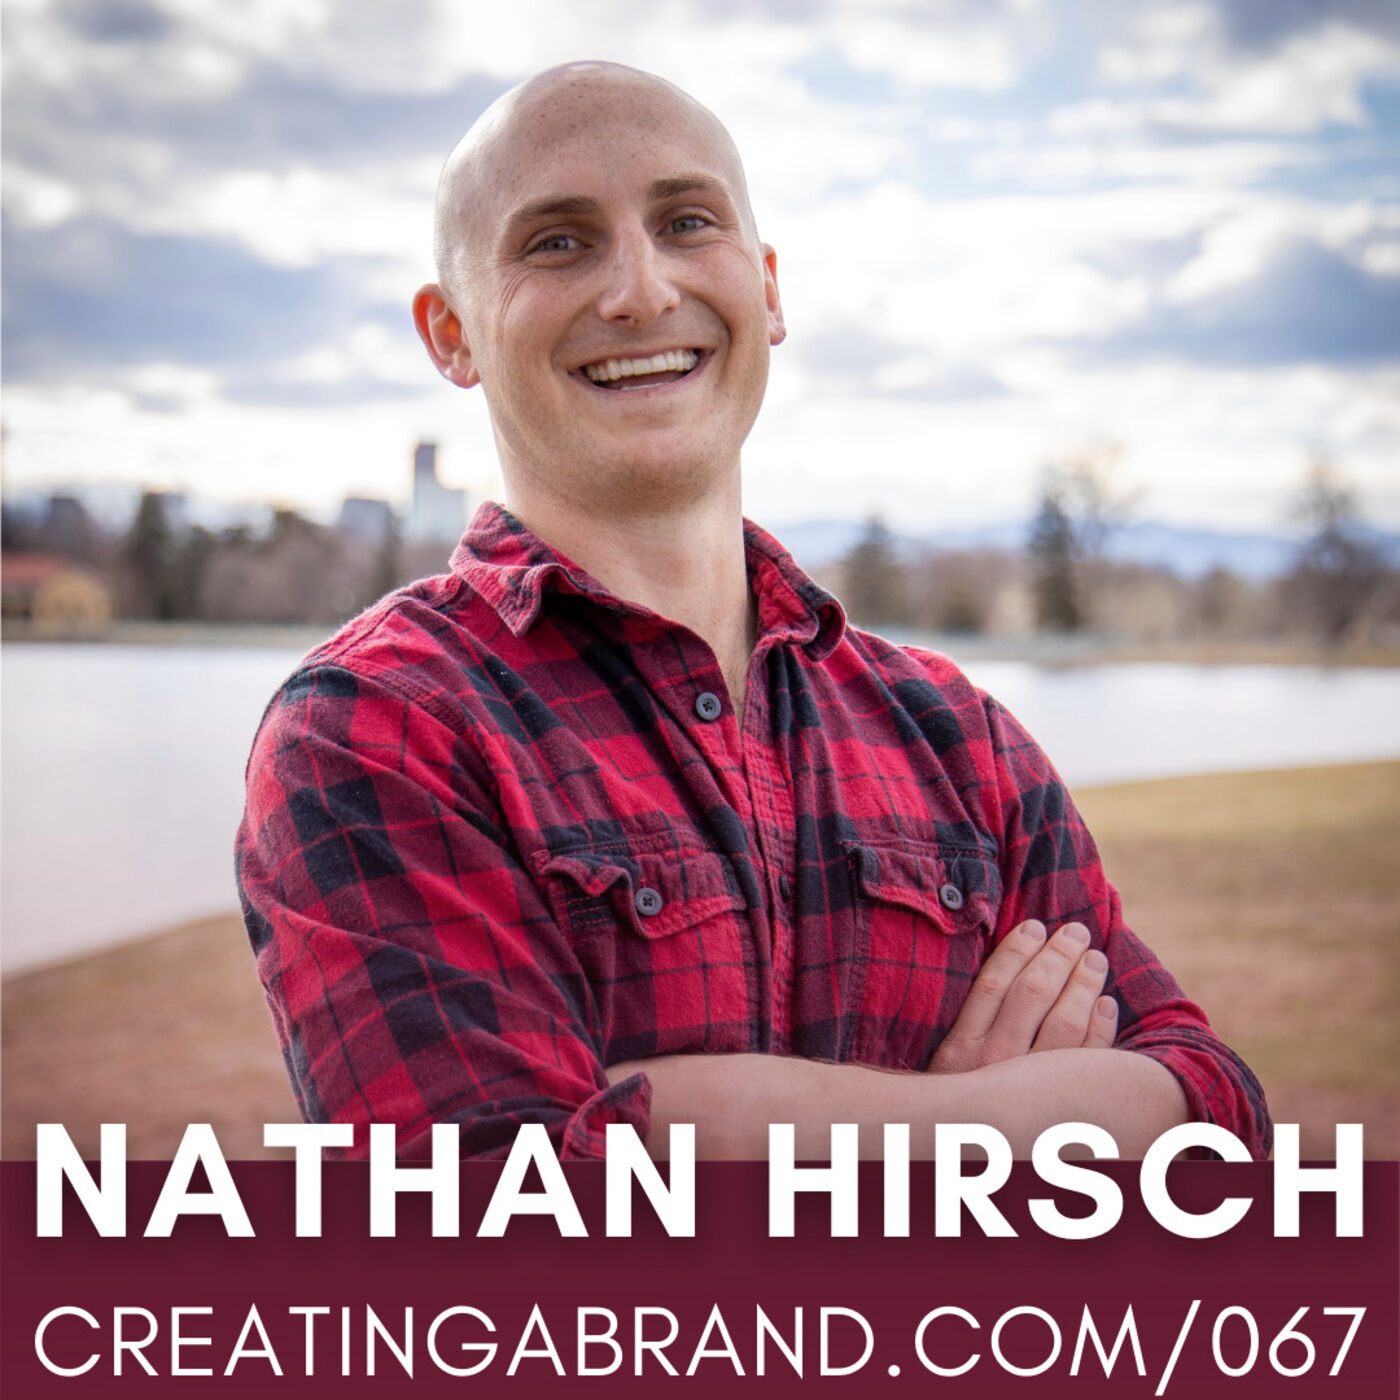 Everything You Need to Know About Hiring a Virtual Assistant with Nathan Hirsch